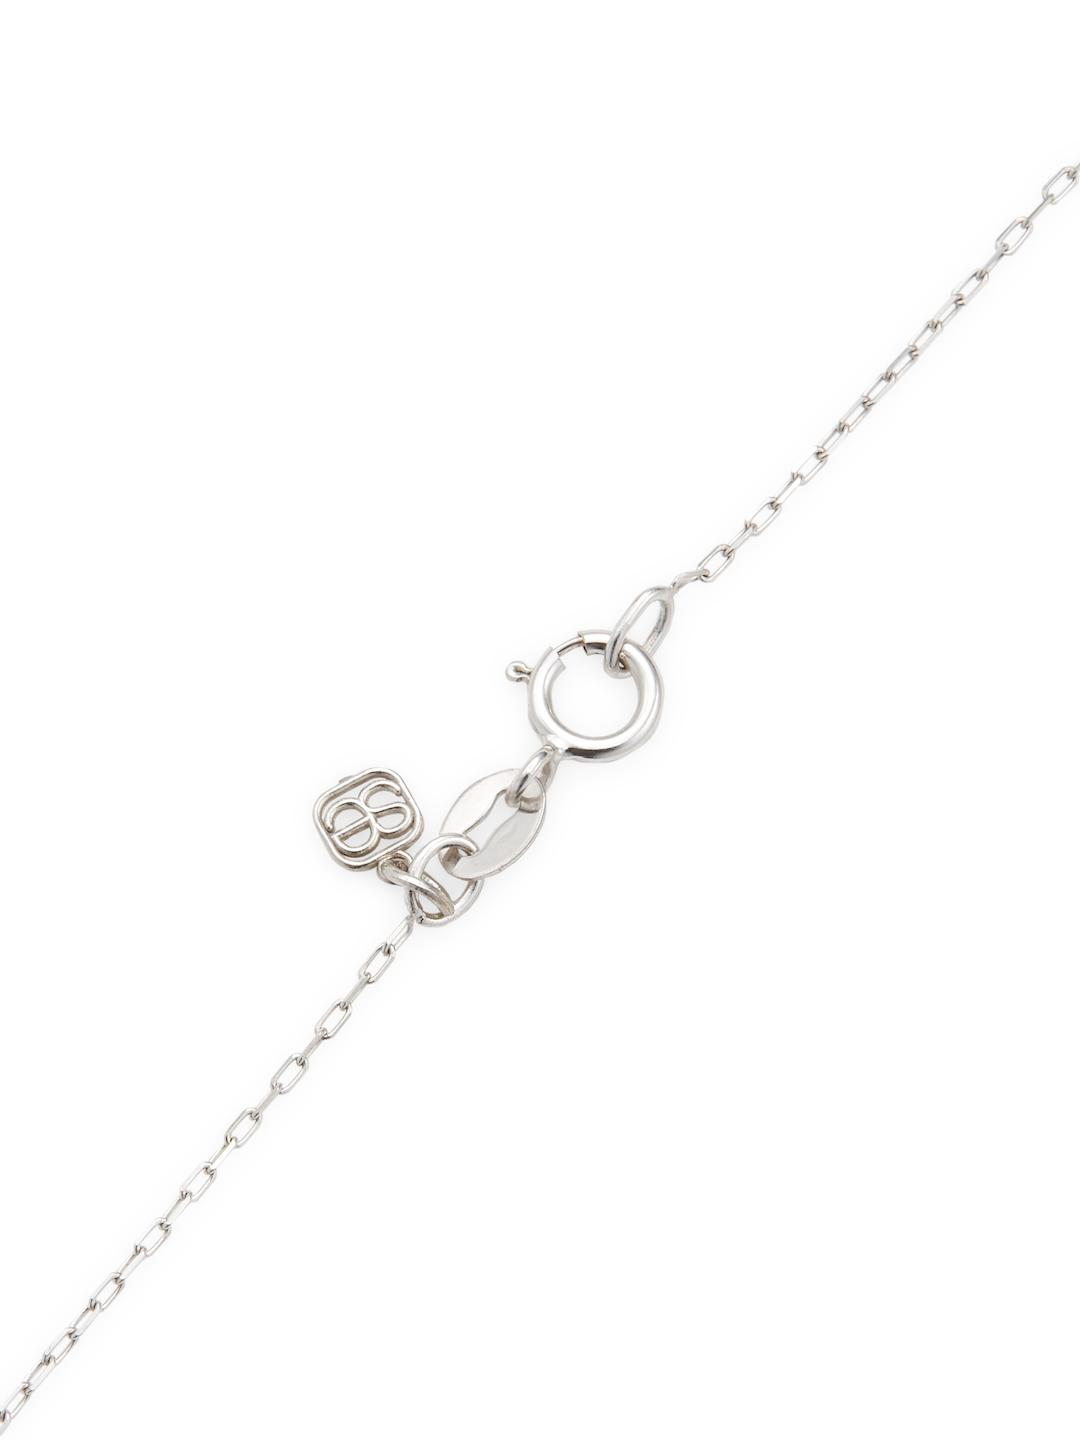 14k white gold wishbone necklace famous necklace 2018 lyst saks fifth avenue 14k yellow gold wishbone pendant necklace aloadofball Image collections